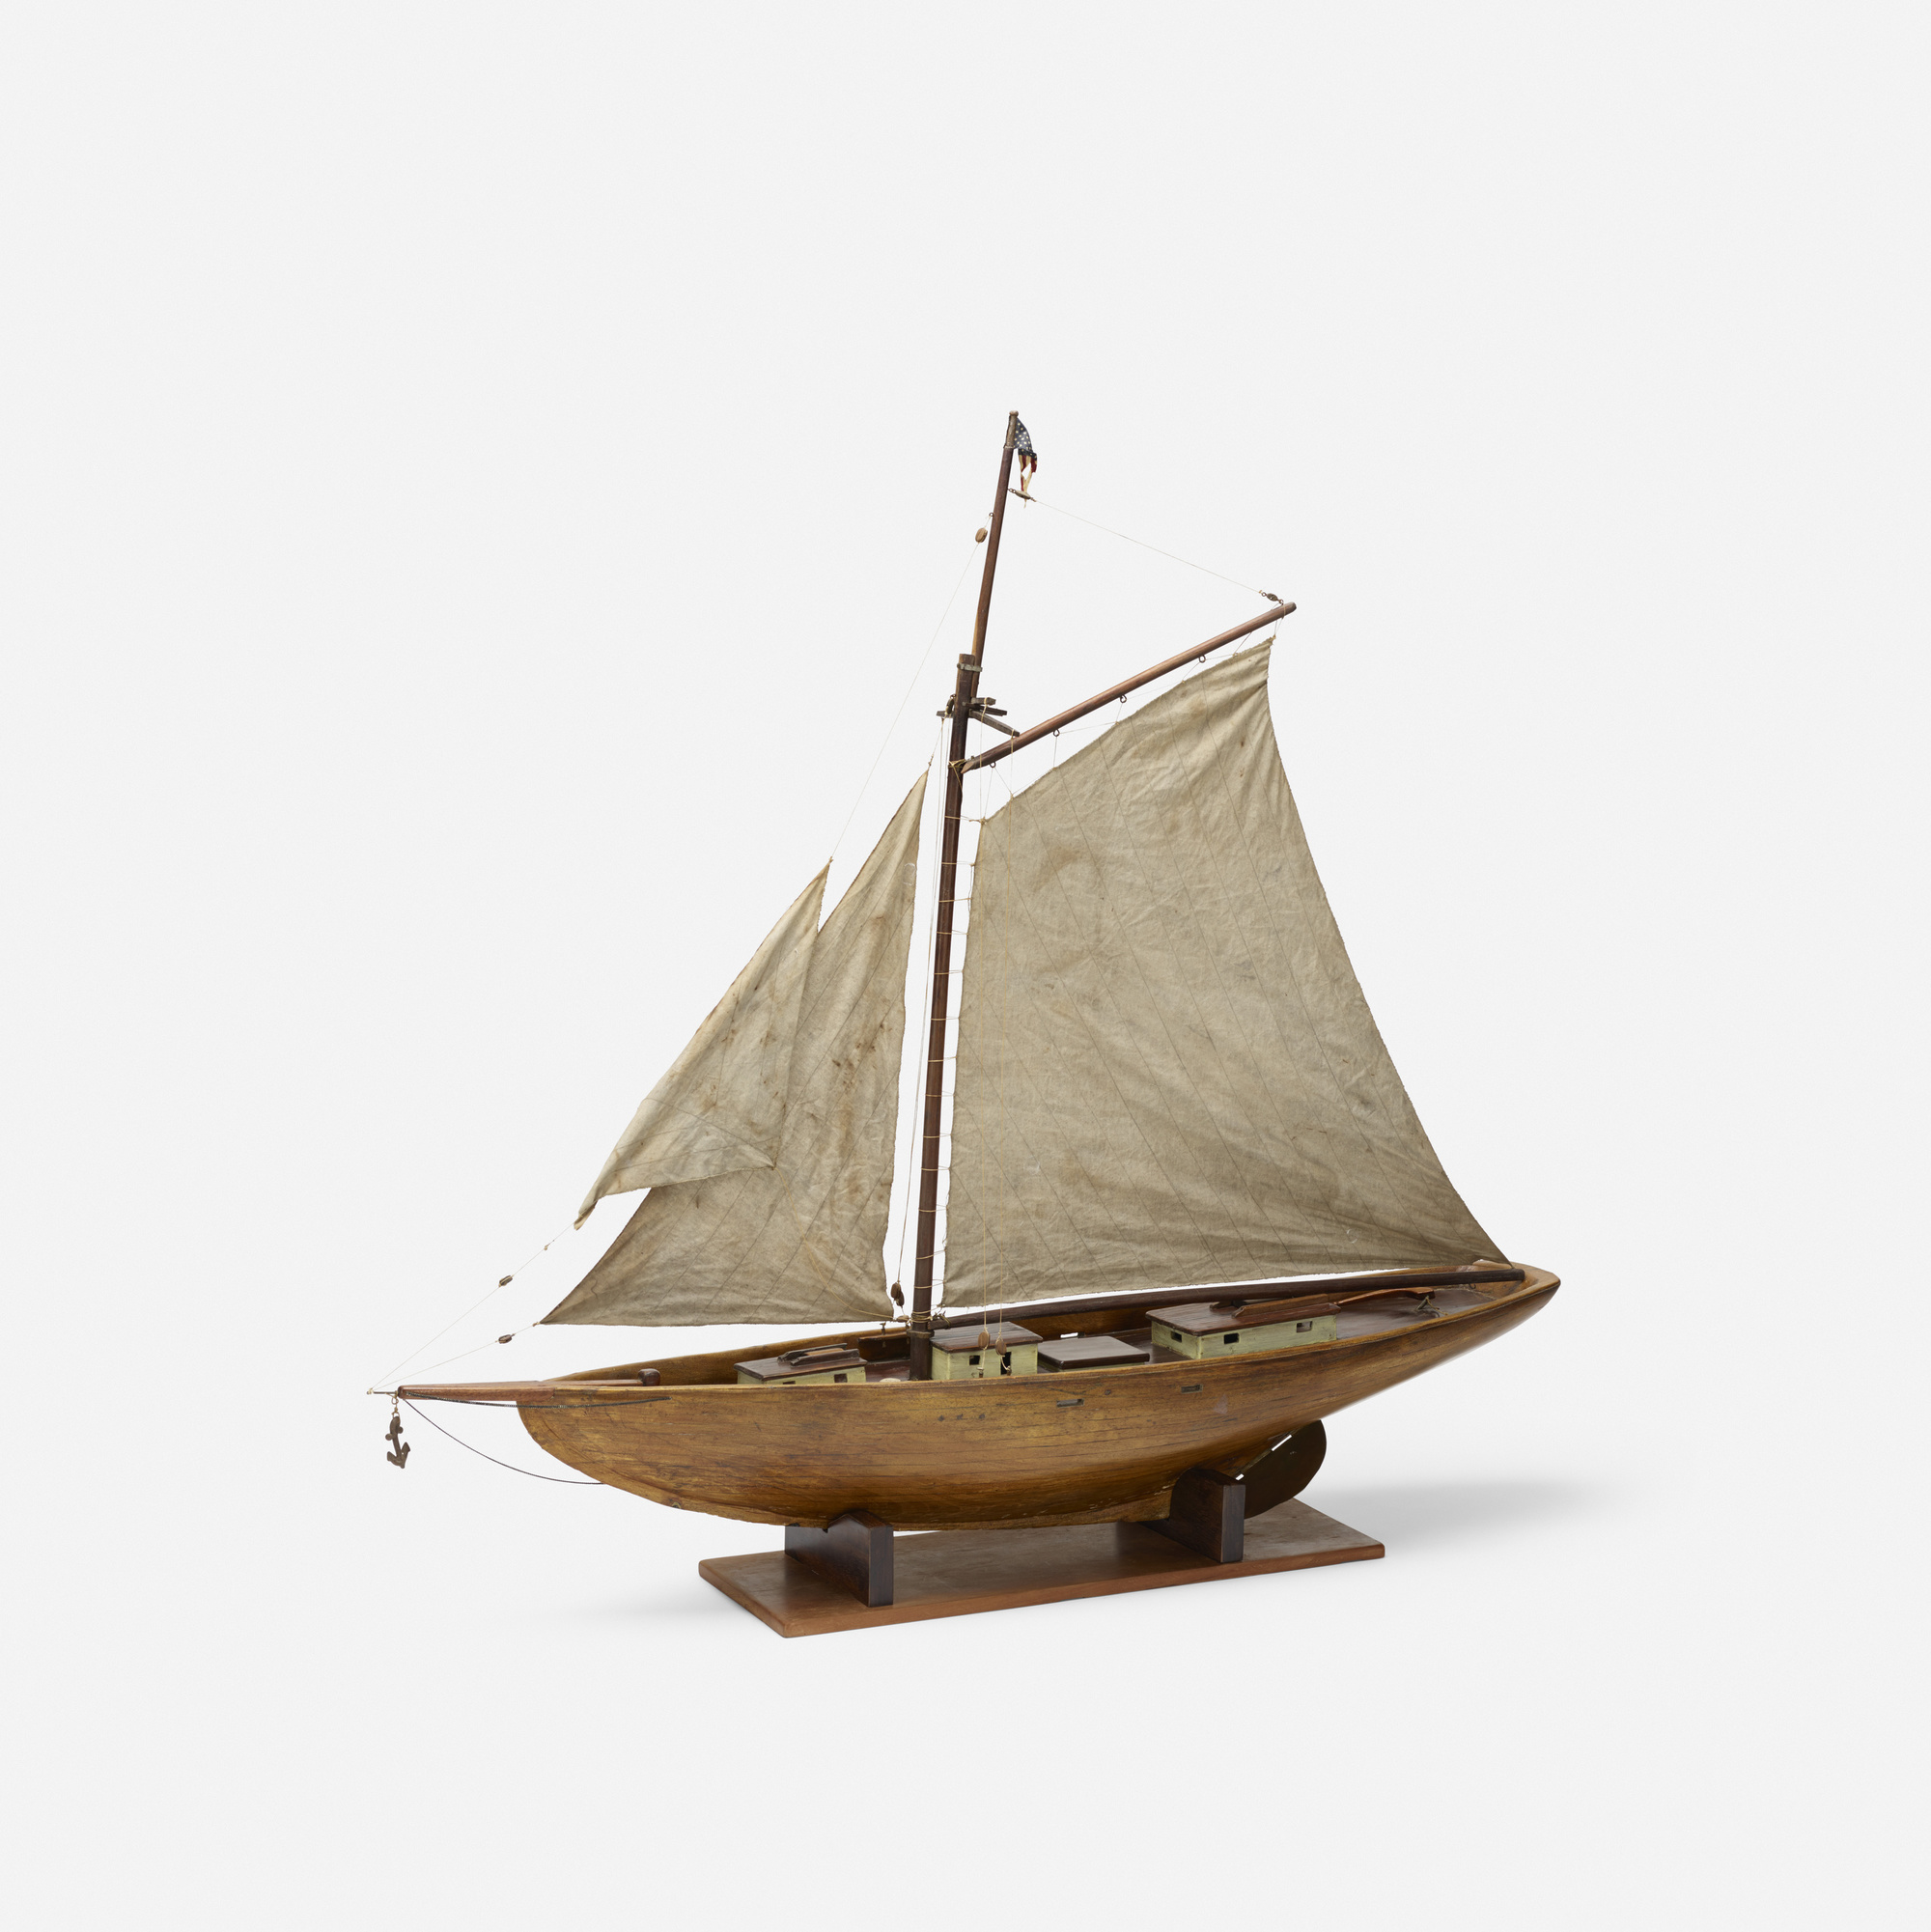 111: Early 20th Century / sailboat model (1 of 3)